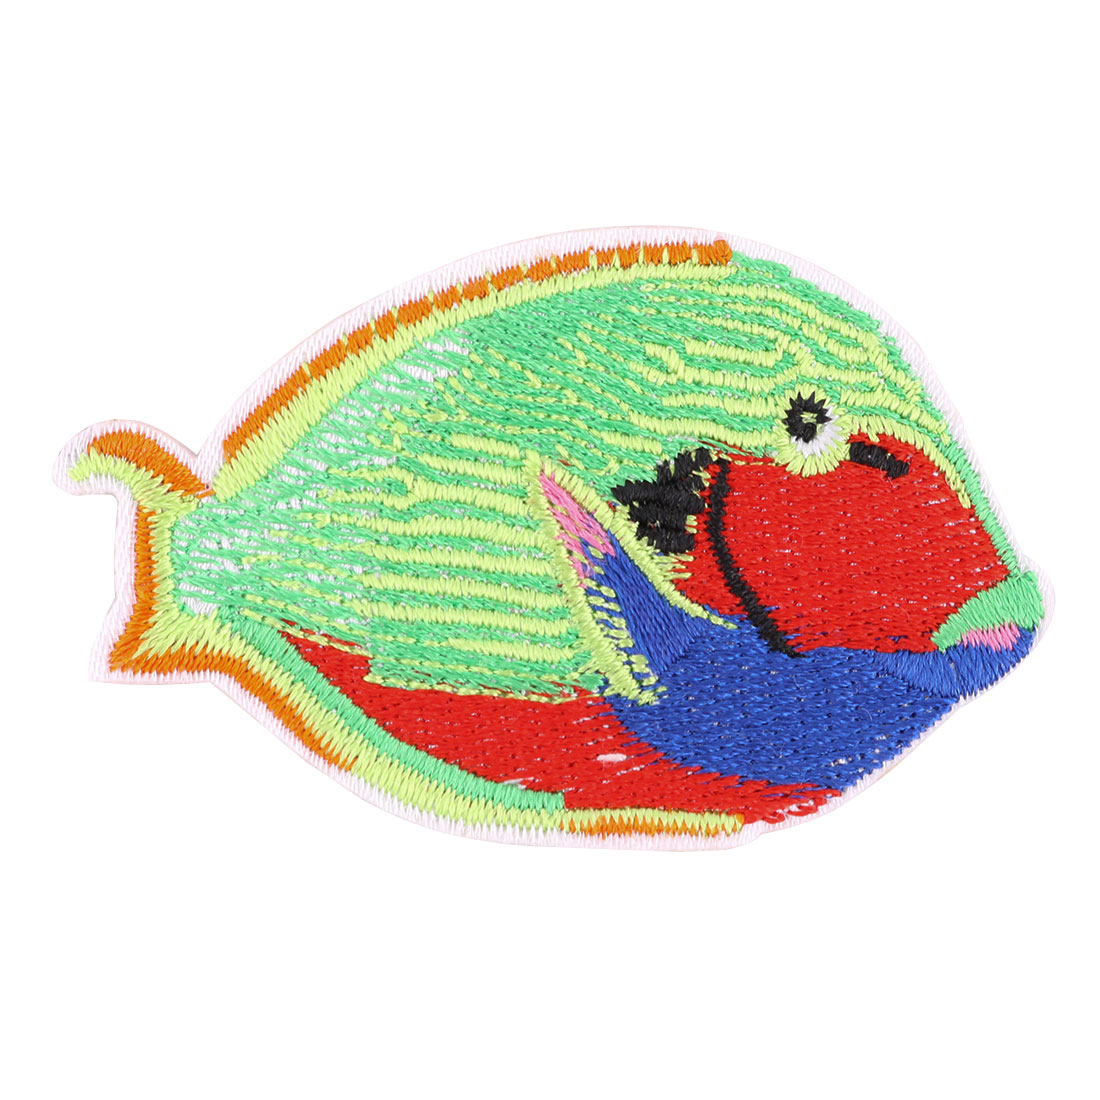 Unique Bargains Home Polyester Fish Design Embroidered DIY Sewing Craft Lace Applique Multicolor